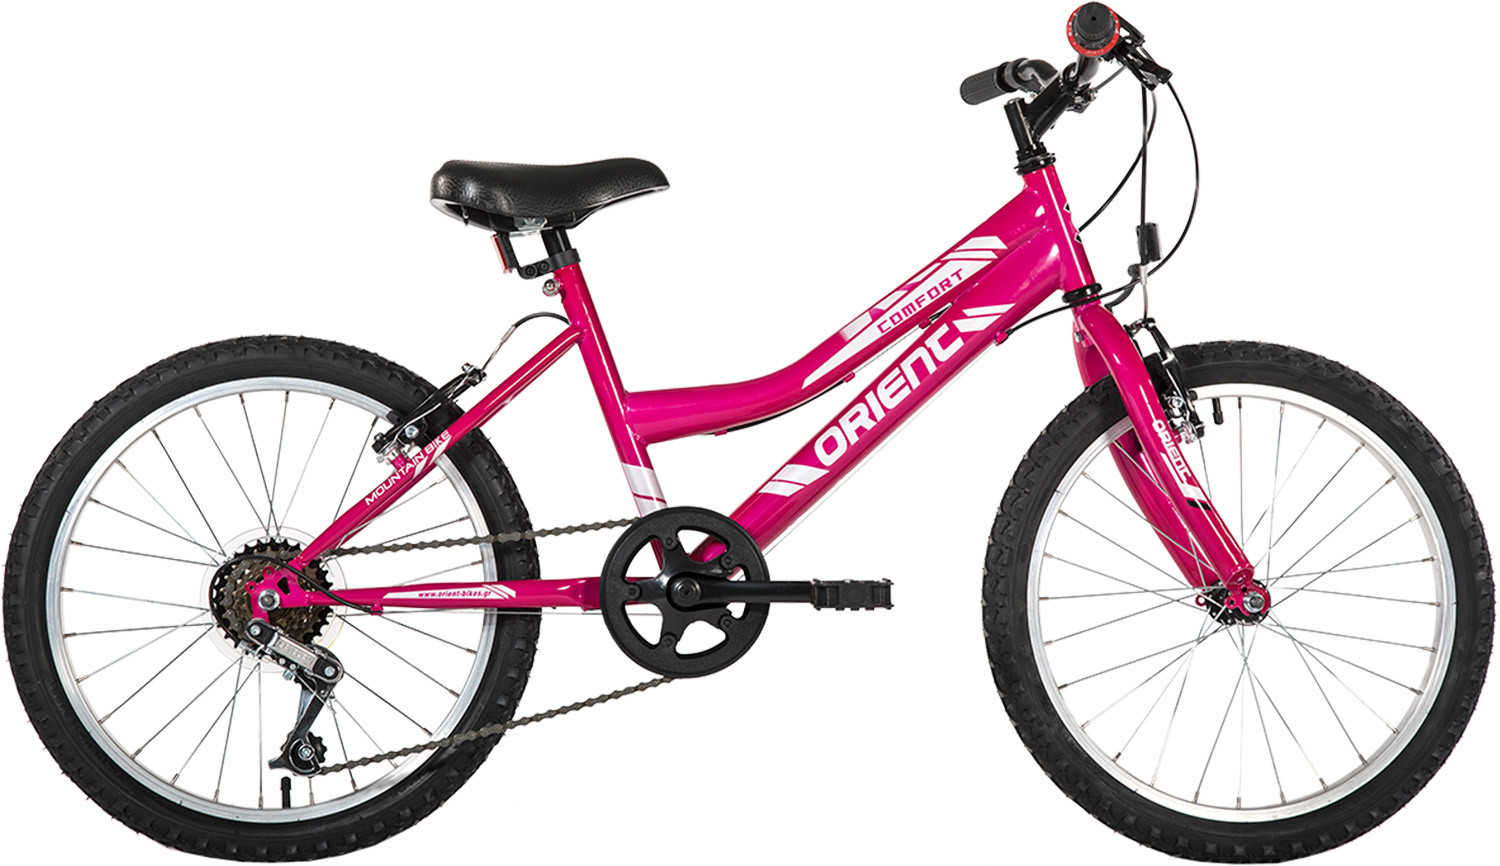 COMFORT 20″ girl 6sp. bike image